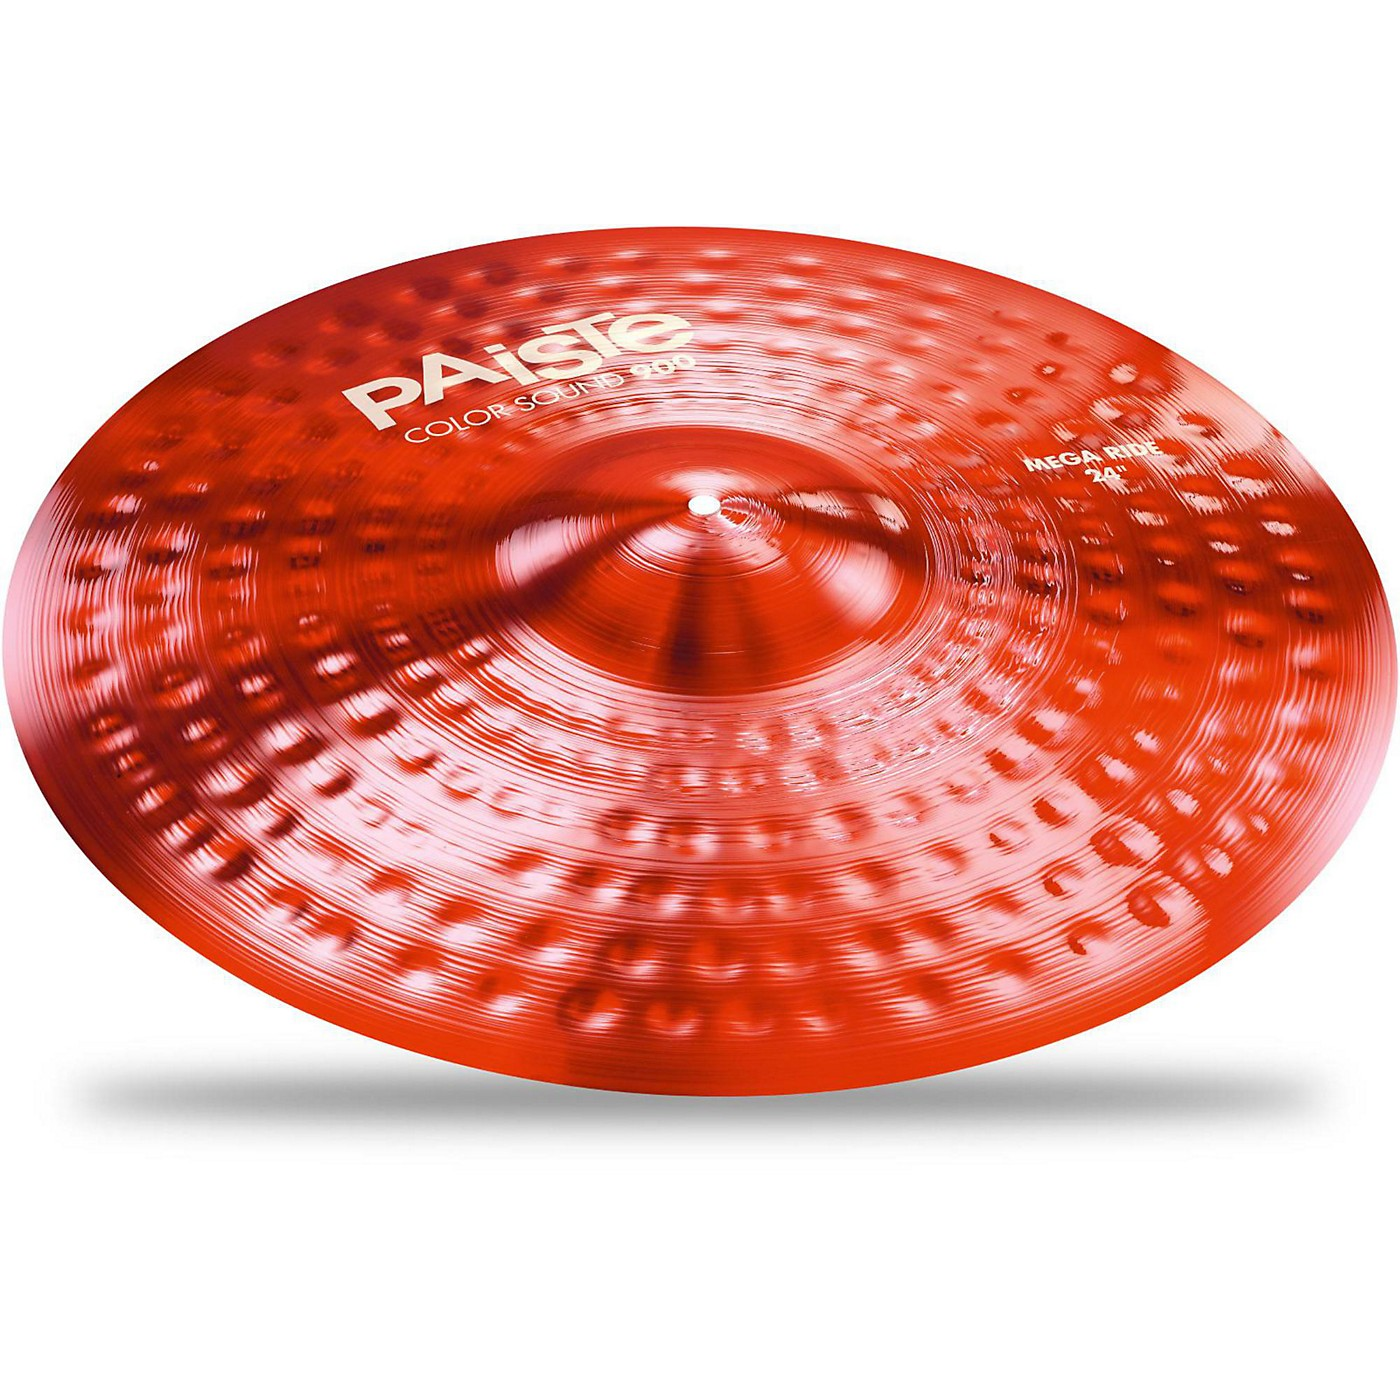 Paiste Colorsound 900 Mega Ride Cymbal Red thumbnail